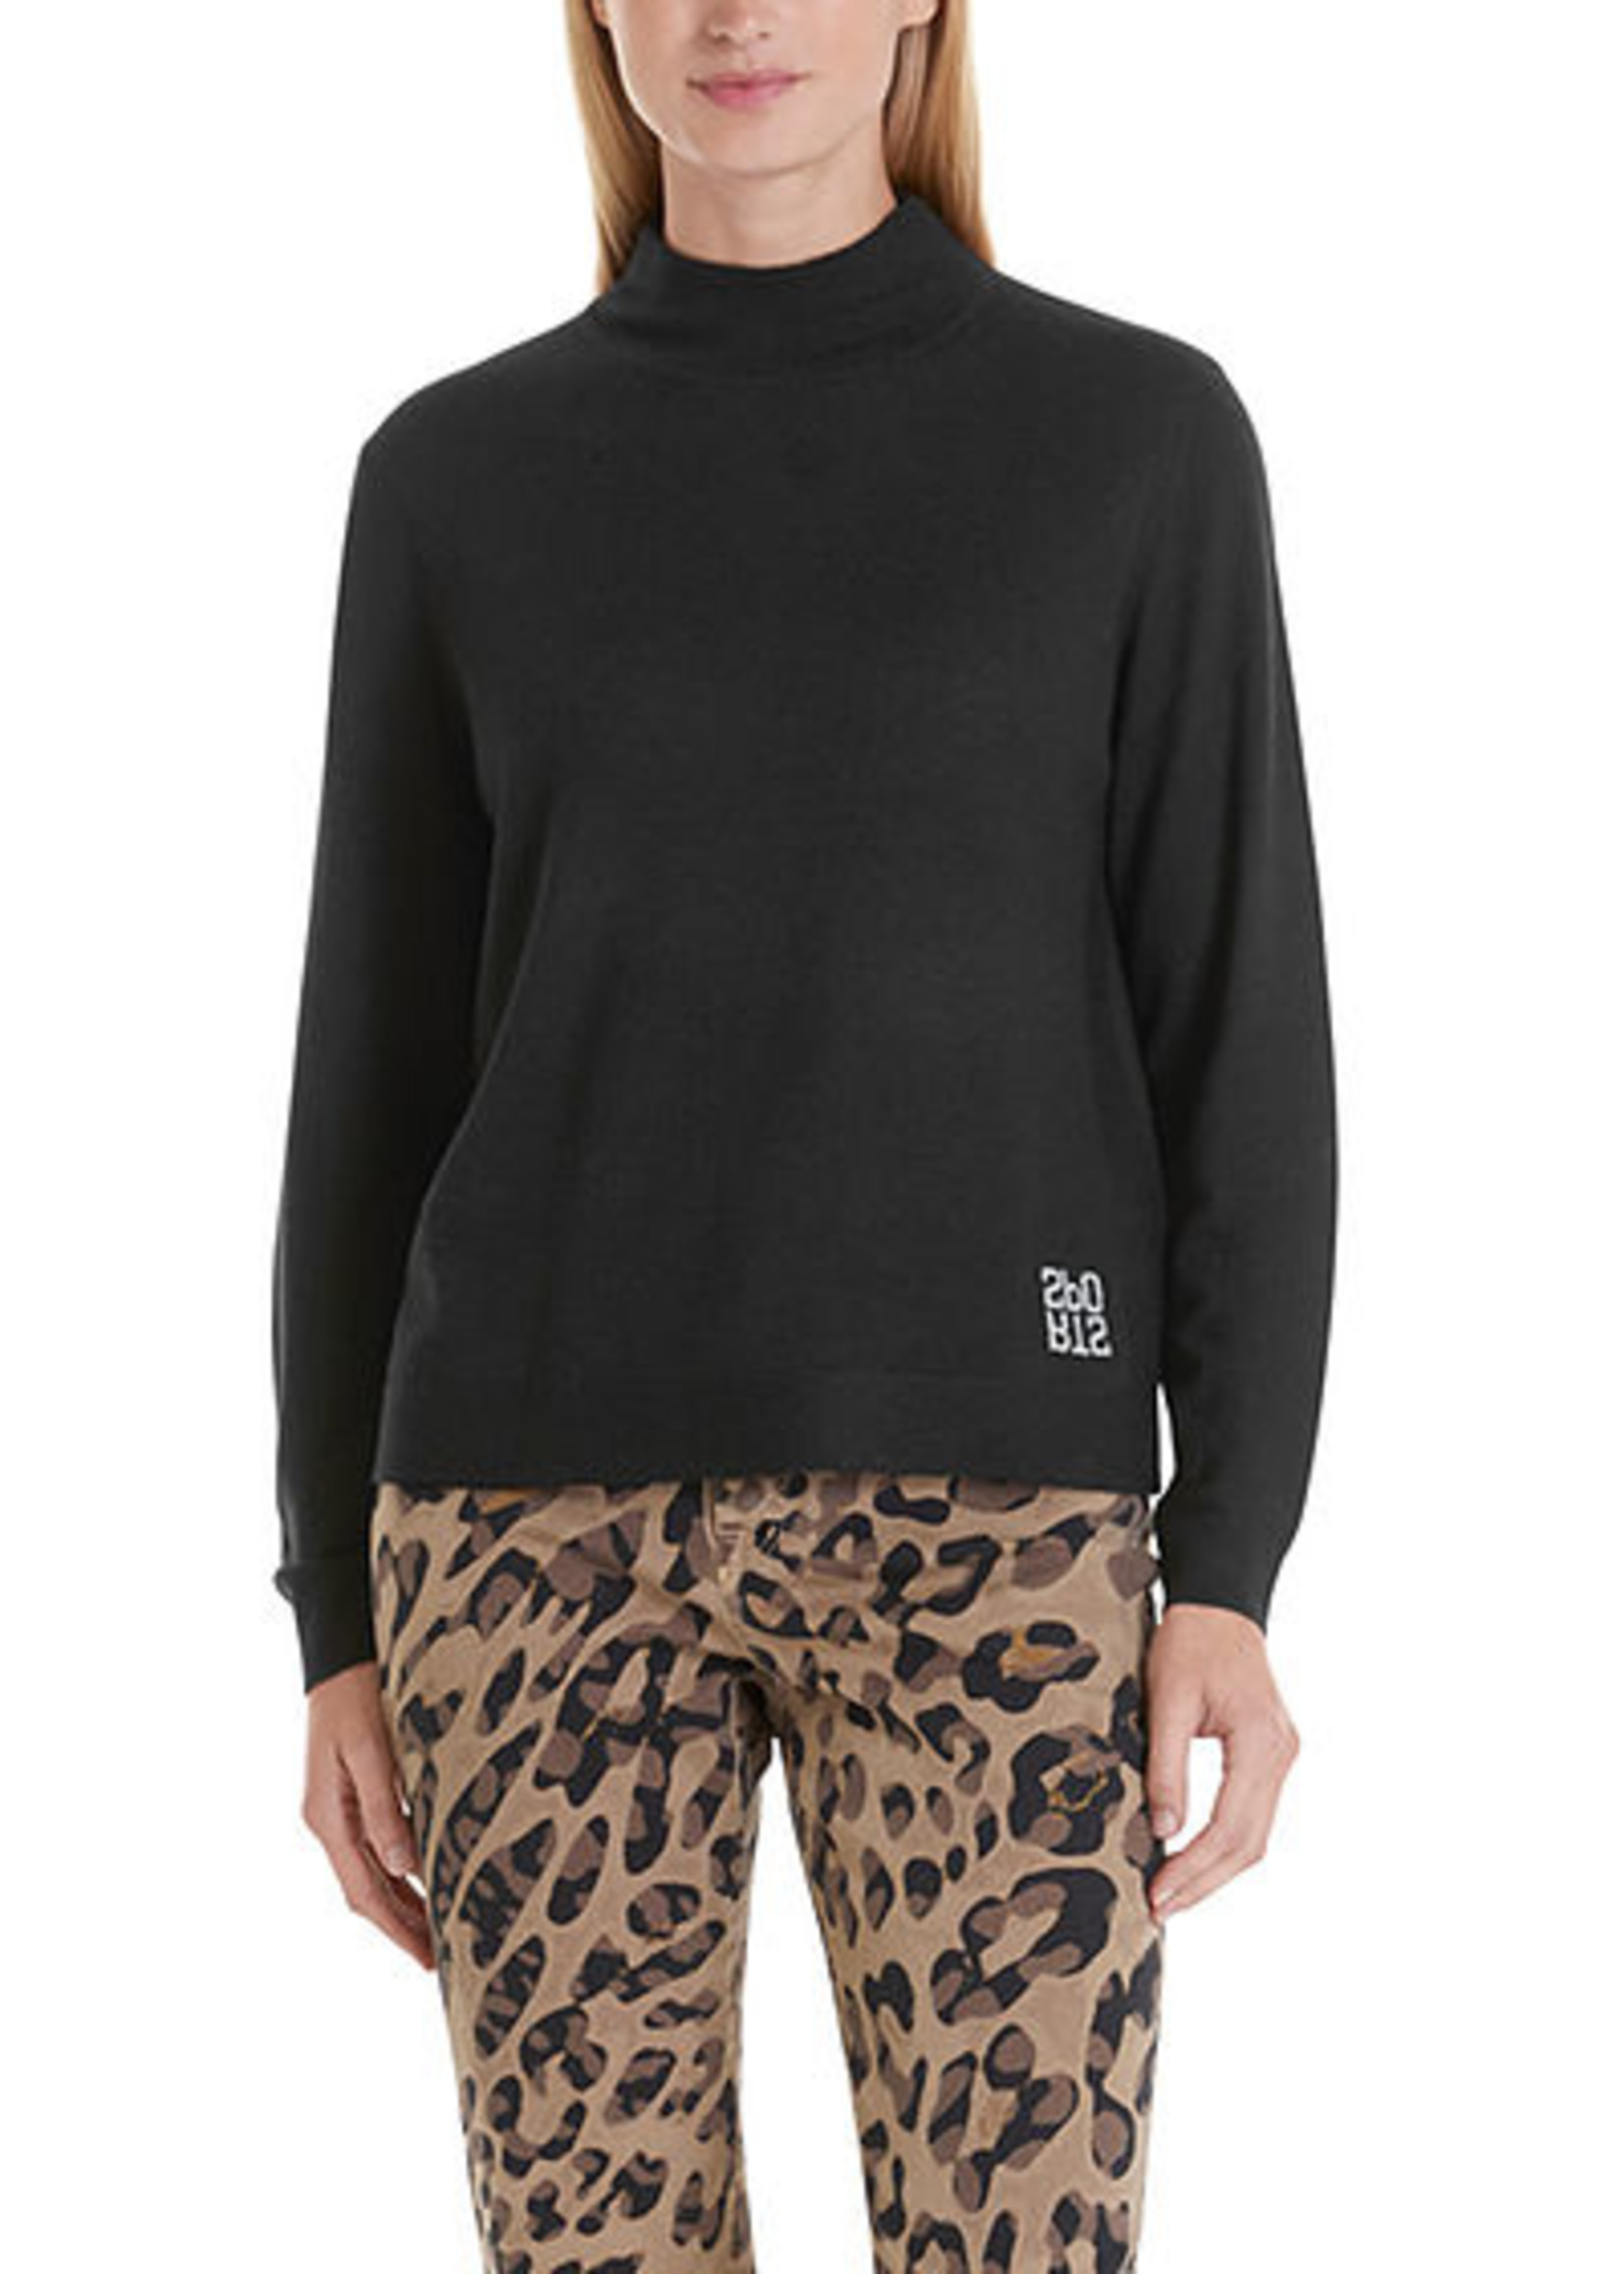 Marccain Sports Sweater RS 41.37 M80 black